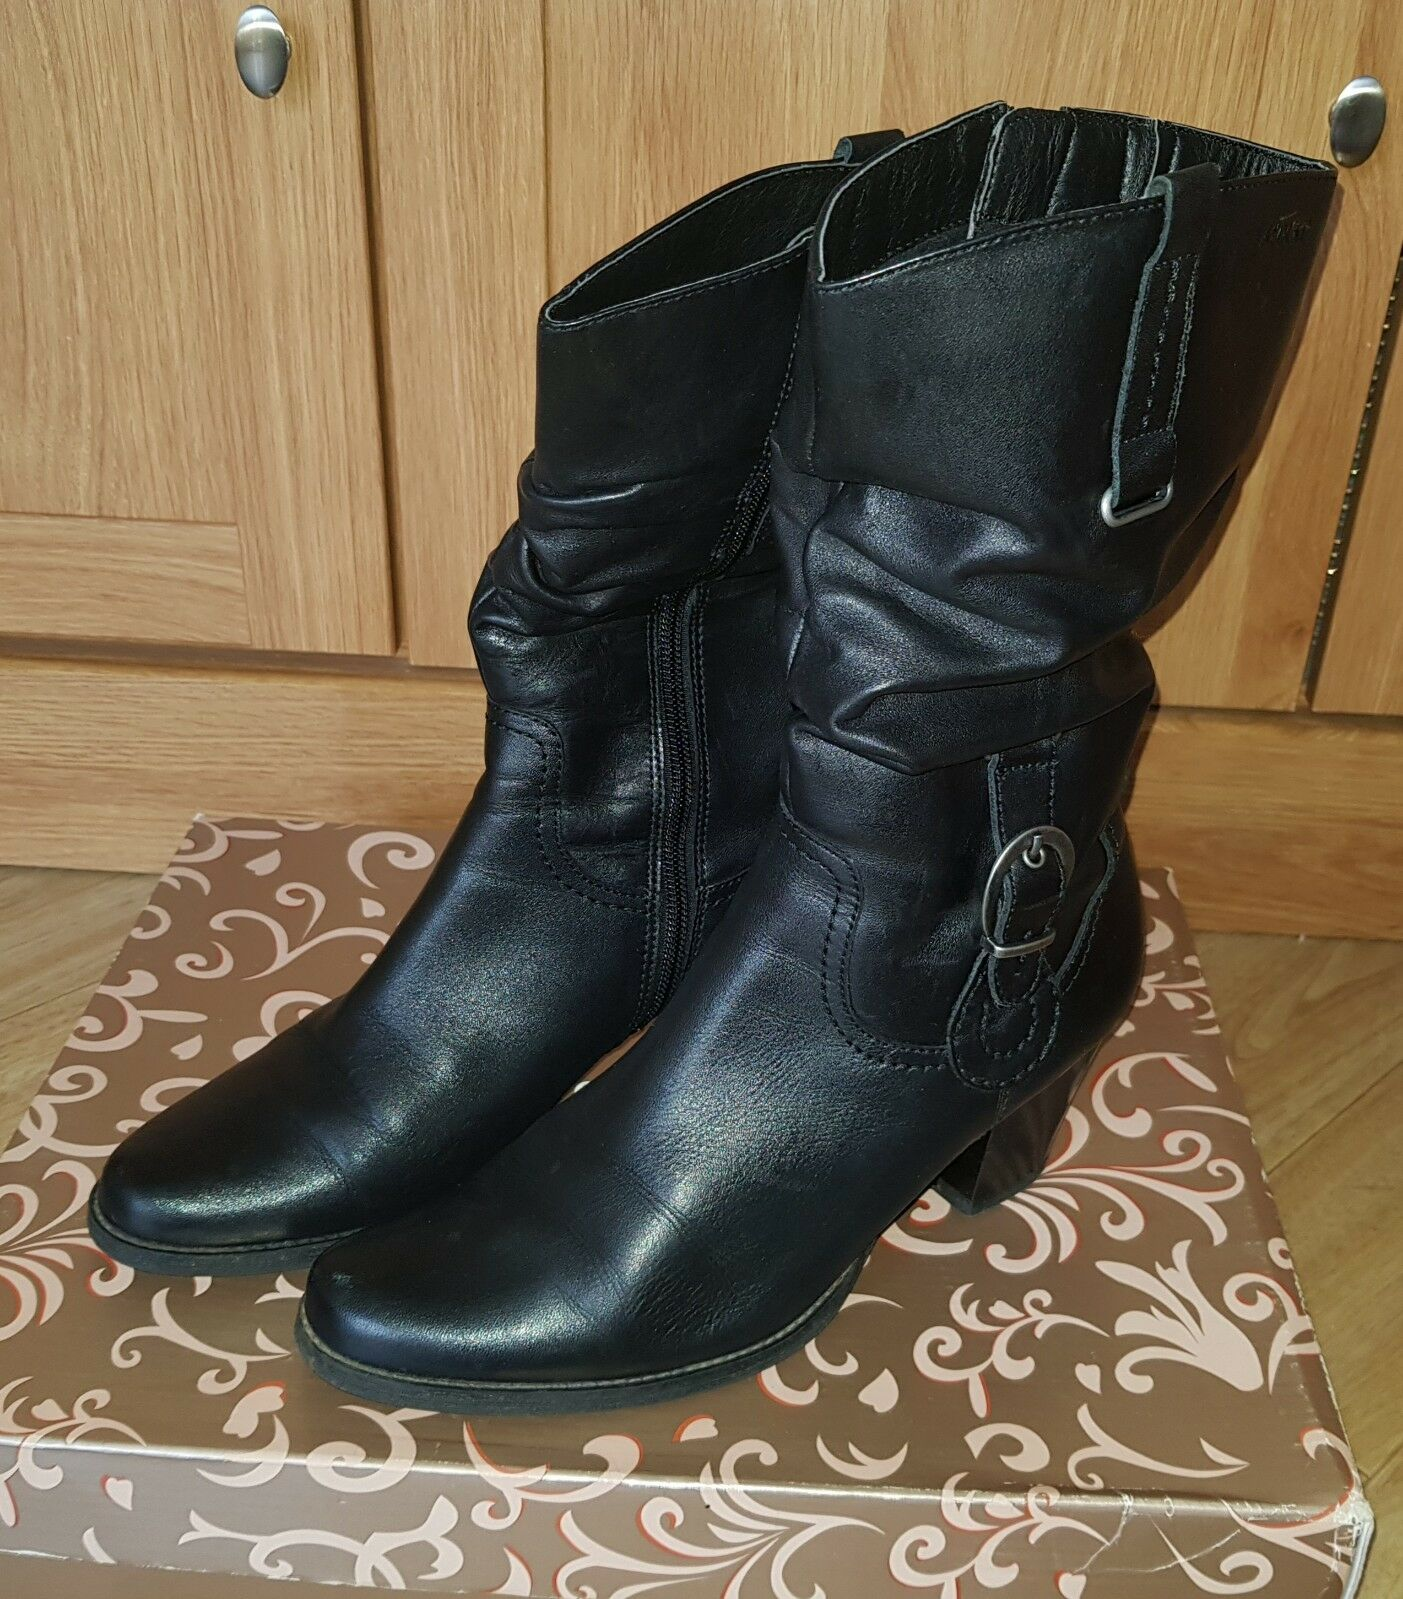 Womens Black Leather Lasocki Boots   shoes, Size 5UK   38EU